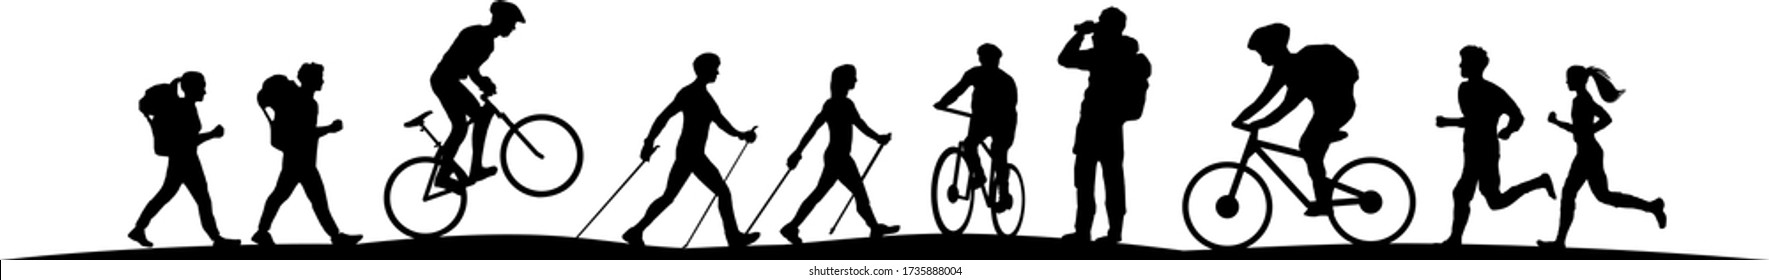 Sport Outdoor Nature Silhouette Vector